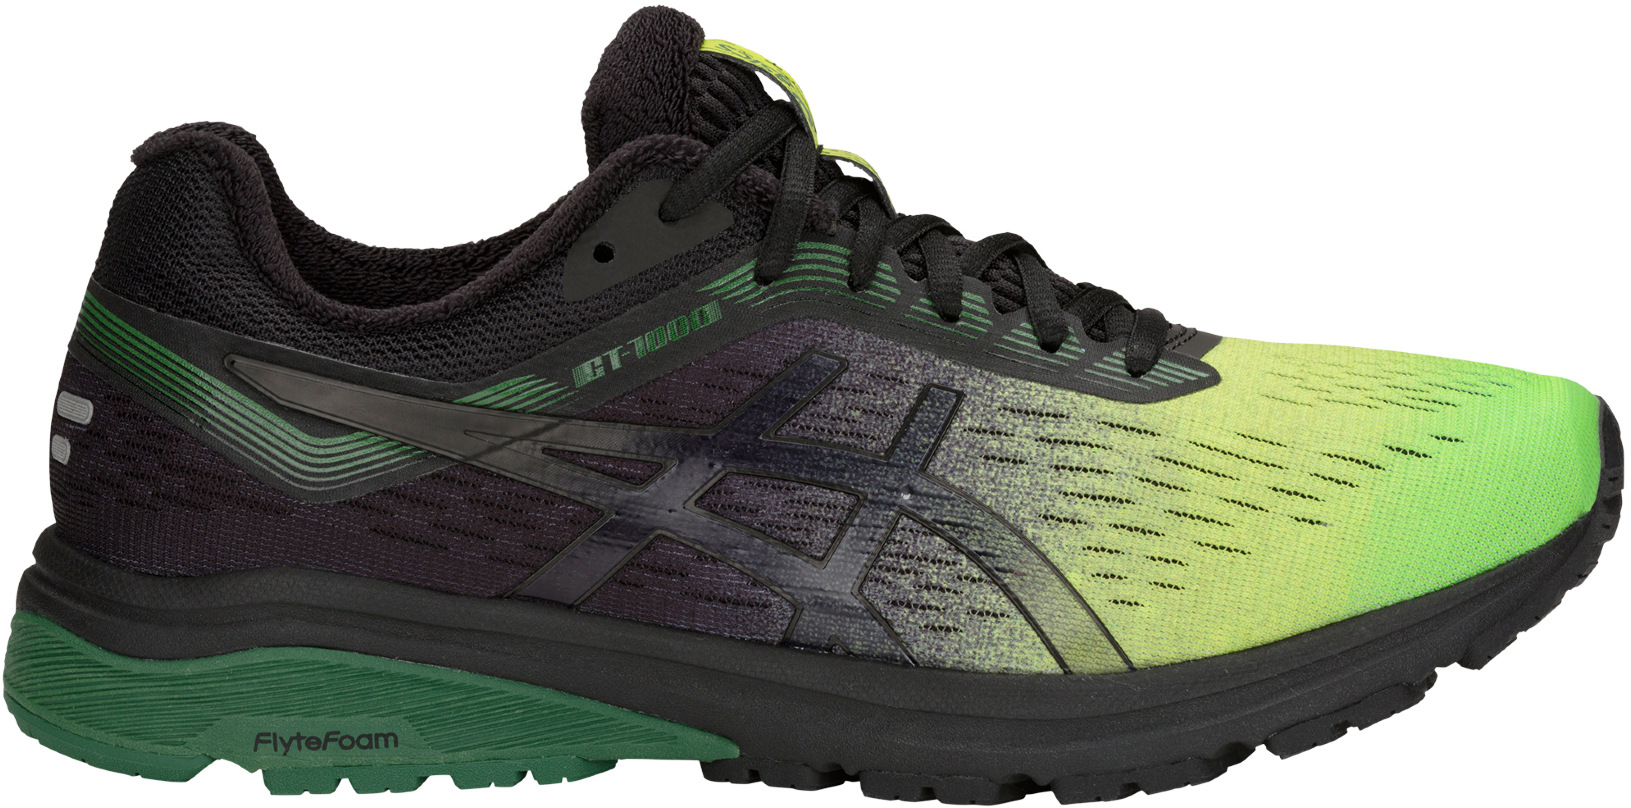 Asics GT-1000 7 SP Shoes   Shoes and overlays